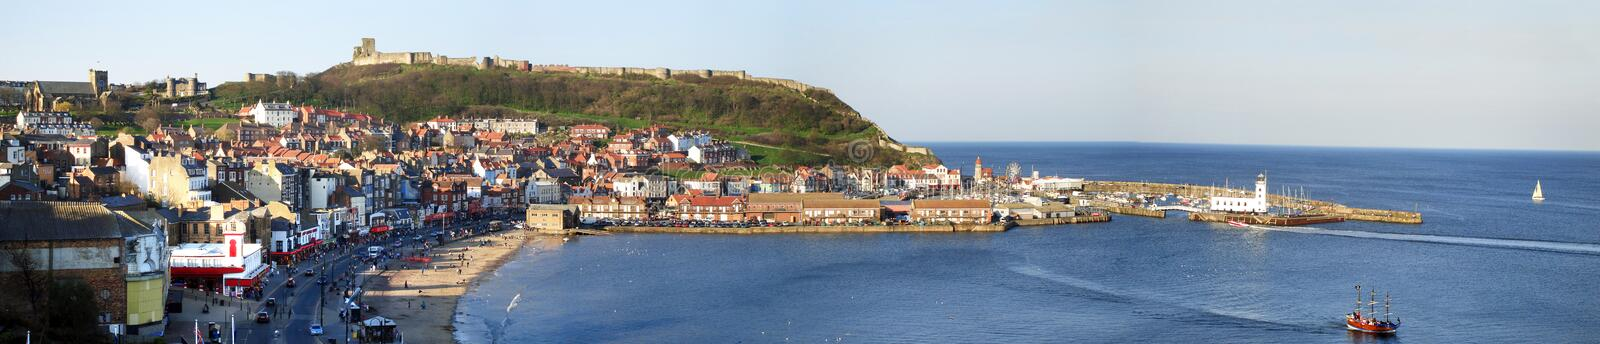 Scarborough-Panorama lizenzfreies stockfoto